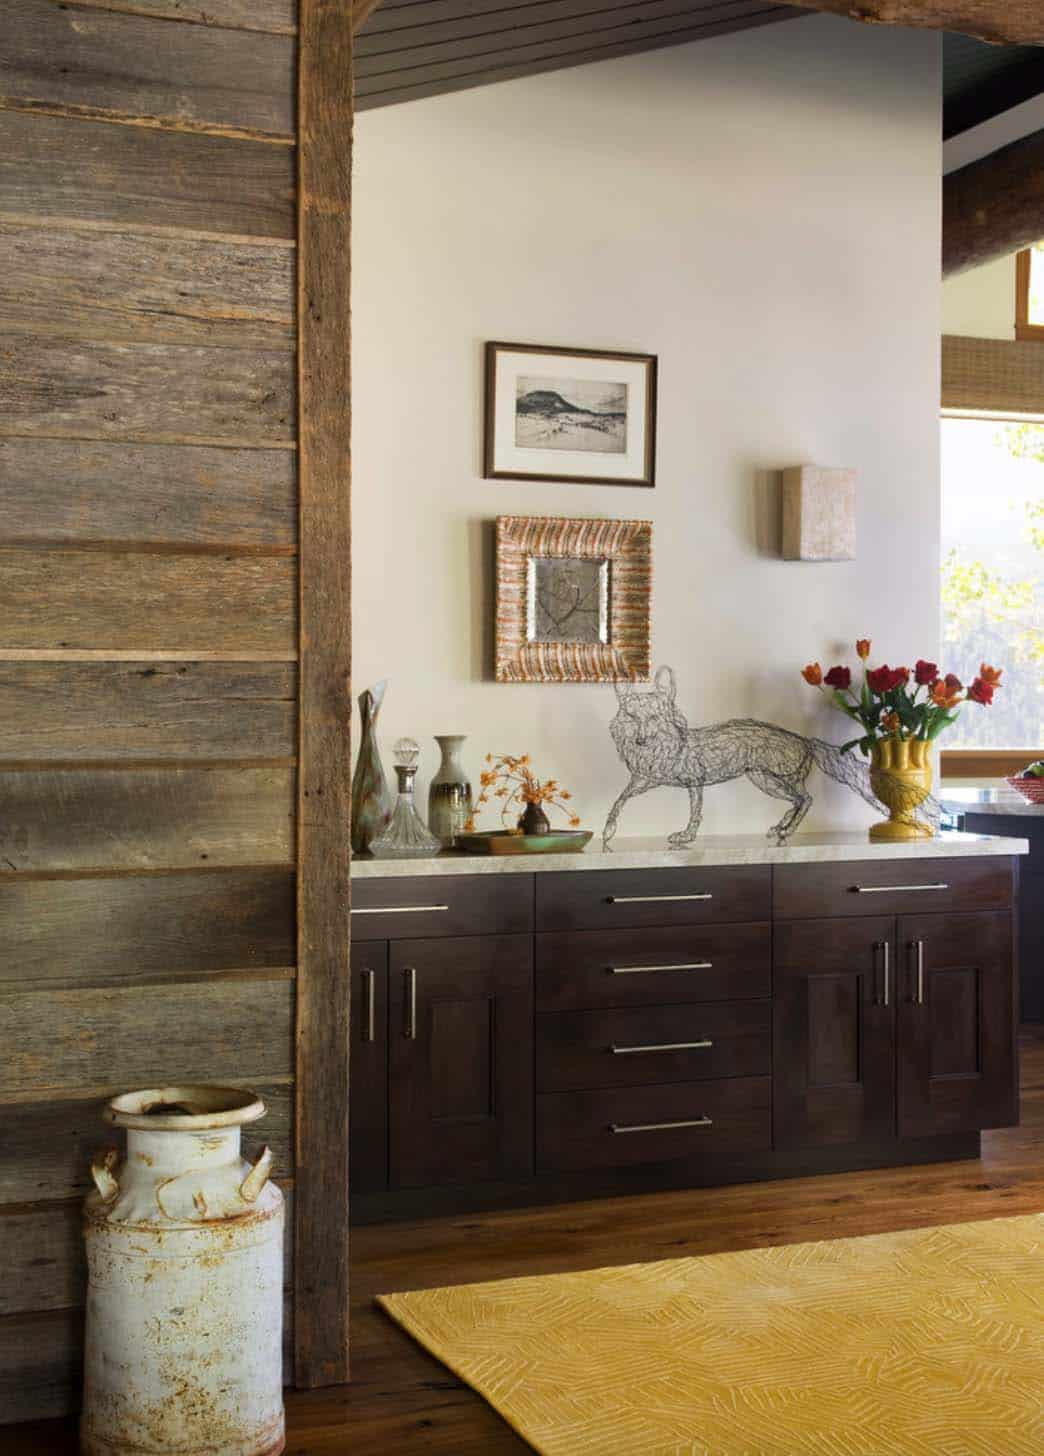 Family Friendly Rustic Mountain Retreat-07-1 Kindesign